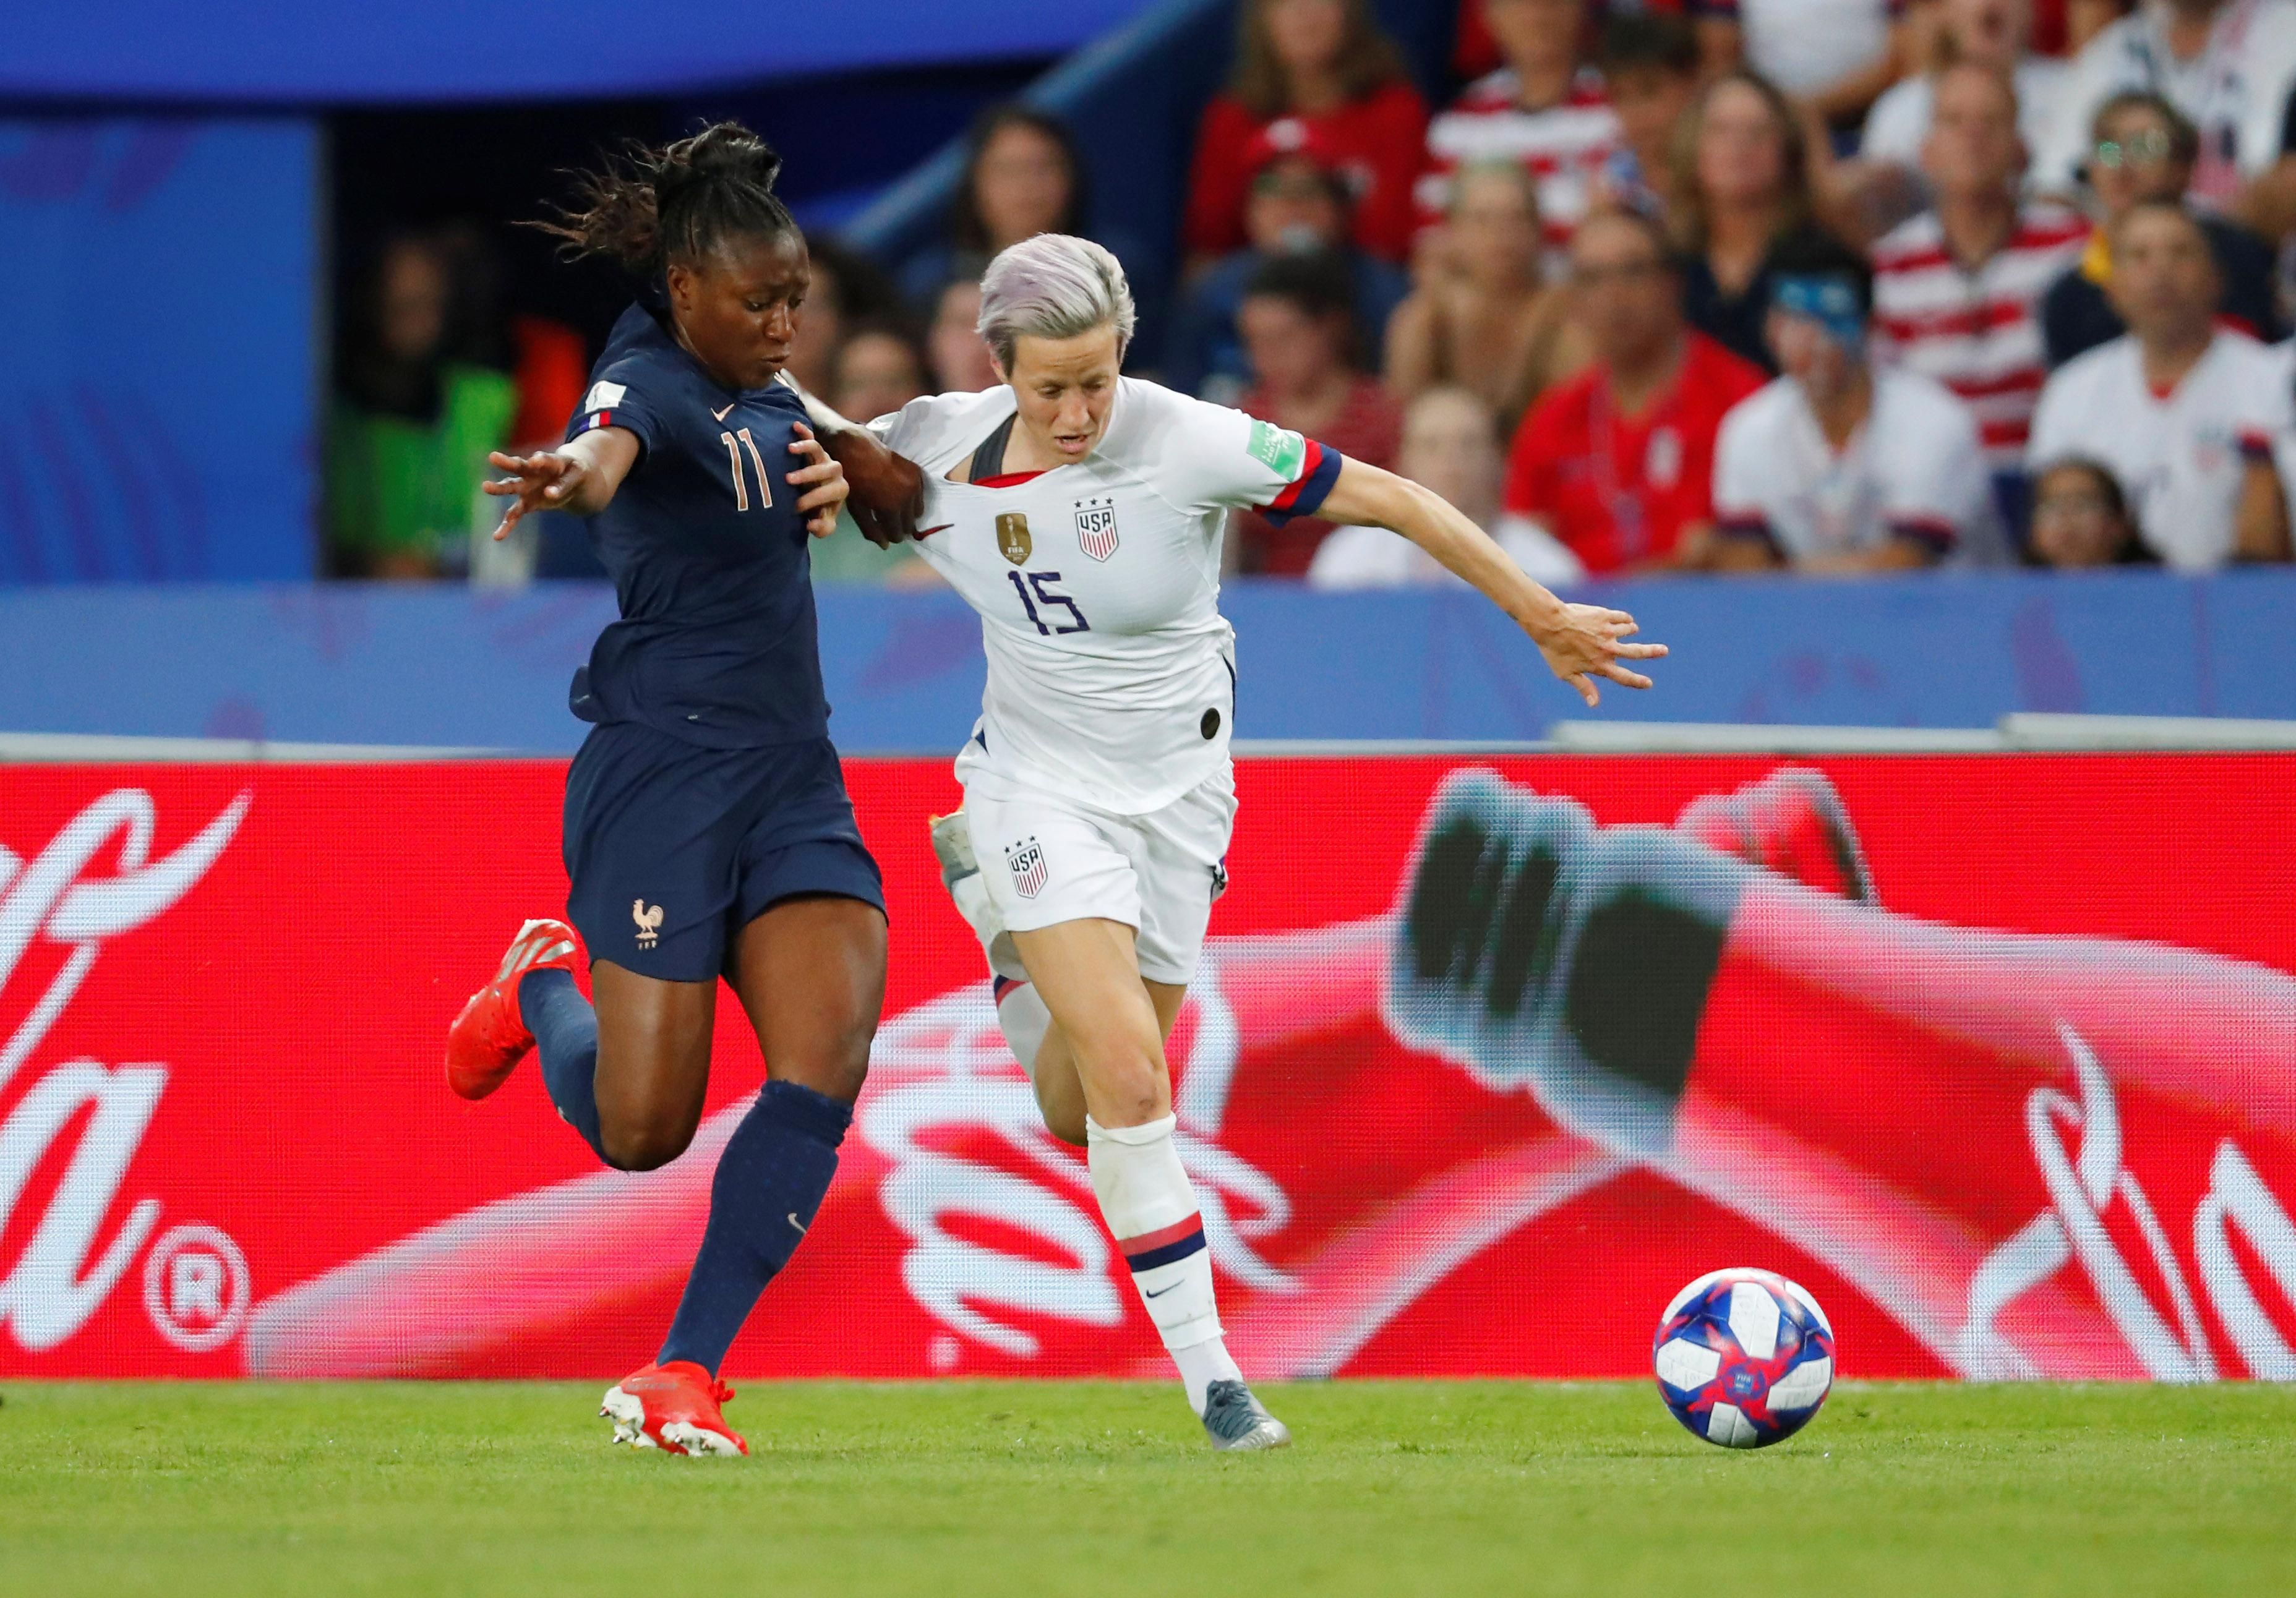 U.S. women's soccer jersey sets sales record amid World Cup fervor